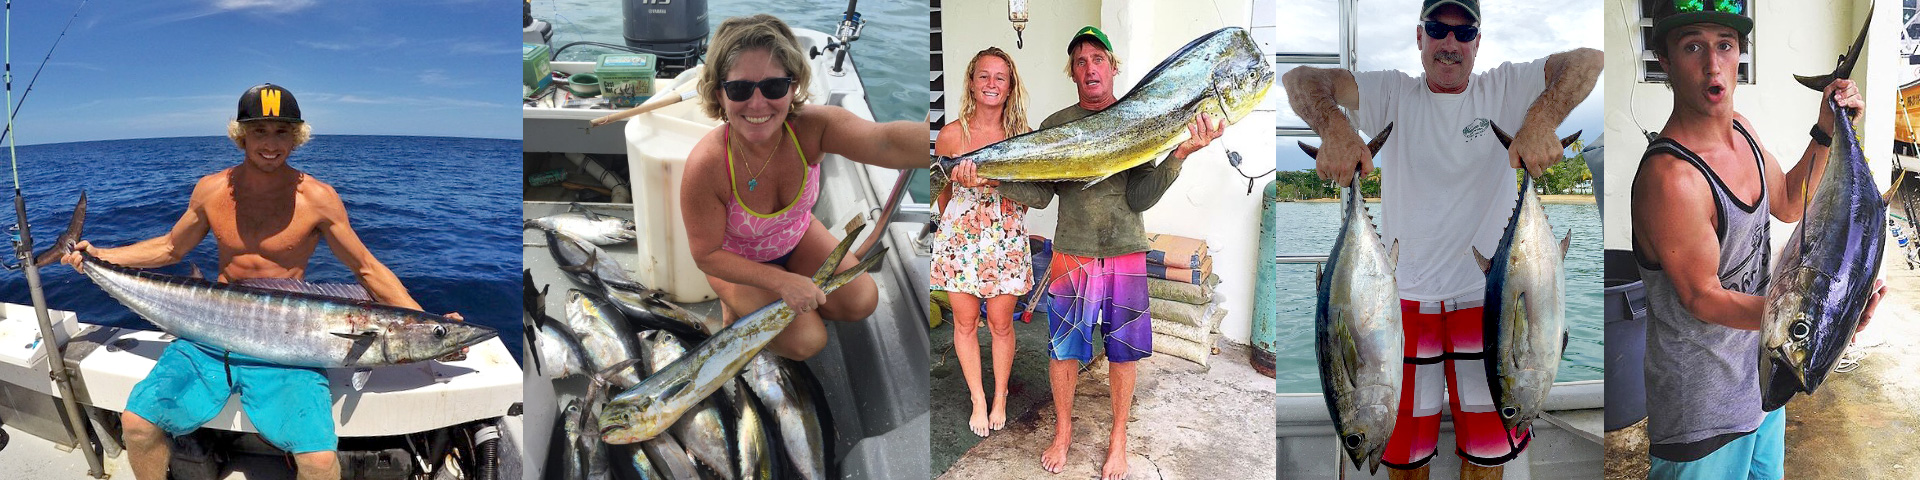 Rincon fishing charter boat - black pearl fishing charters in puerto rico.